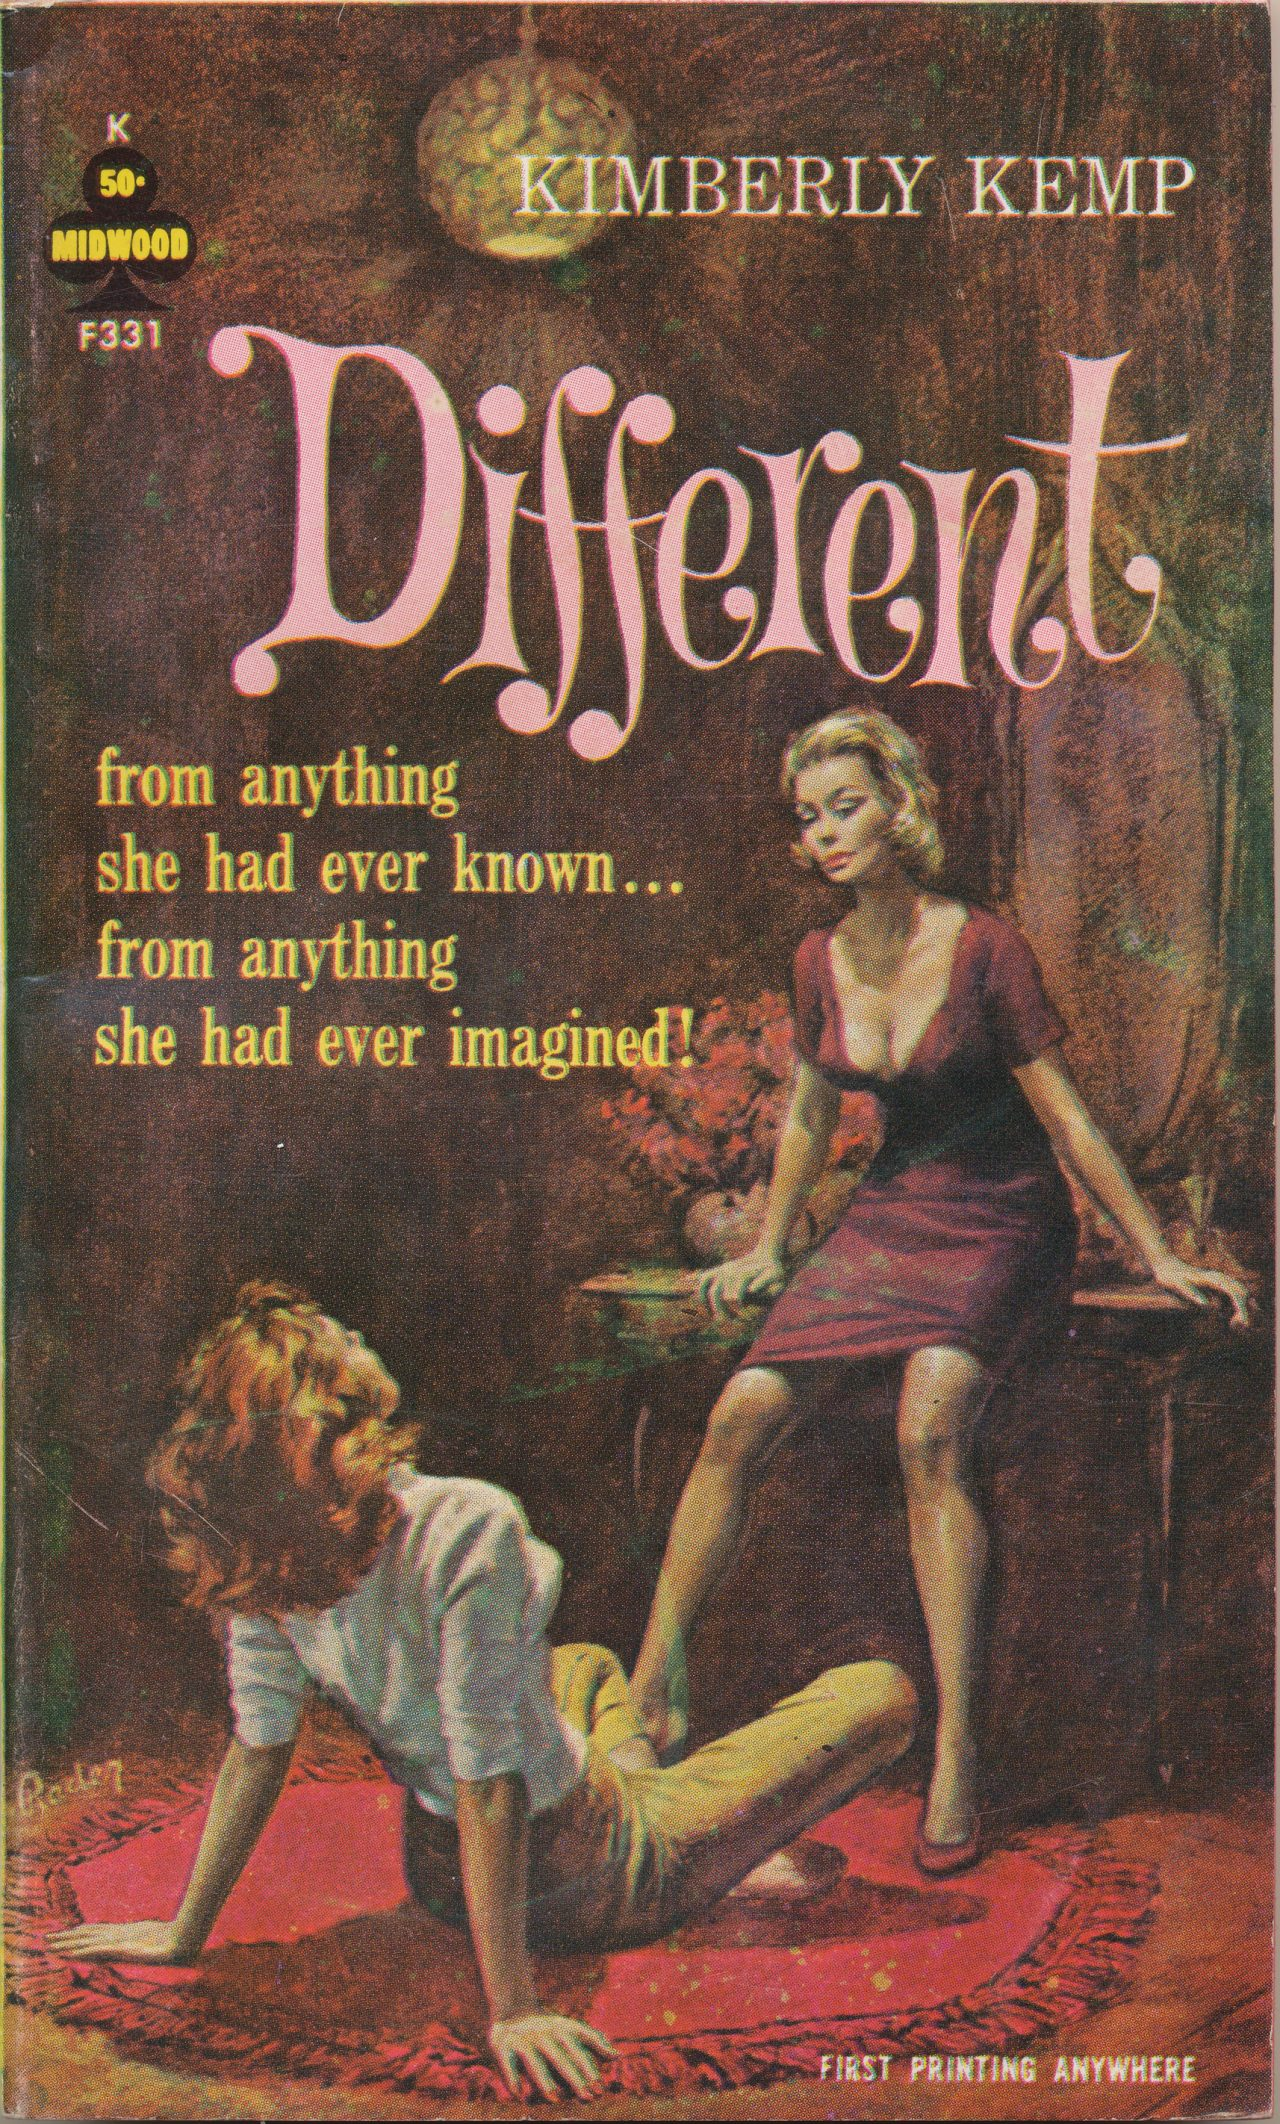 from Keegan gay pulp fiction paperback